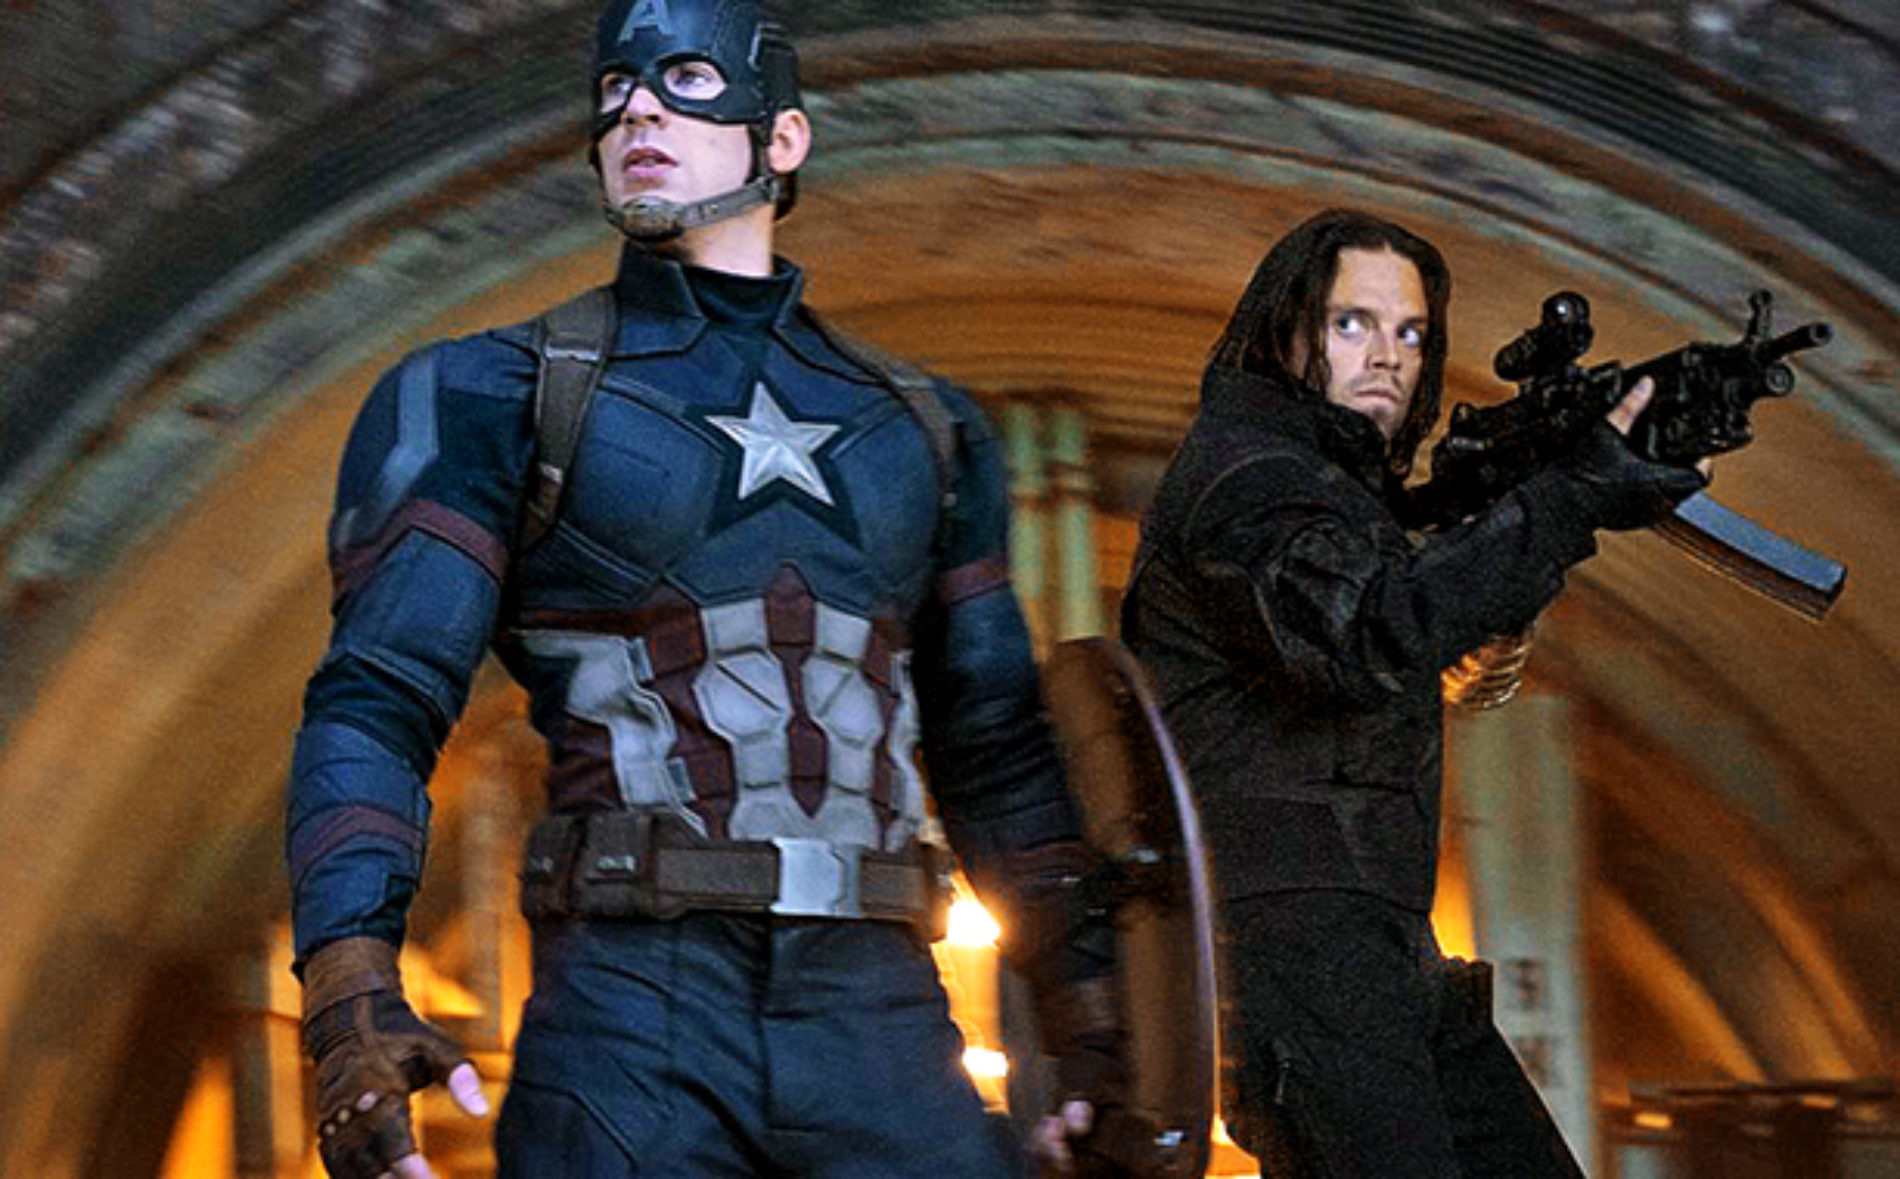 #GiveCaptainAmericaABoyfriend: Twitter wants a boyfriend for Captain America